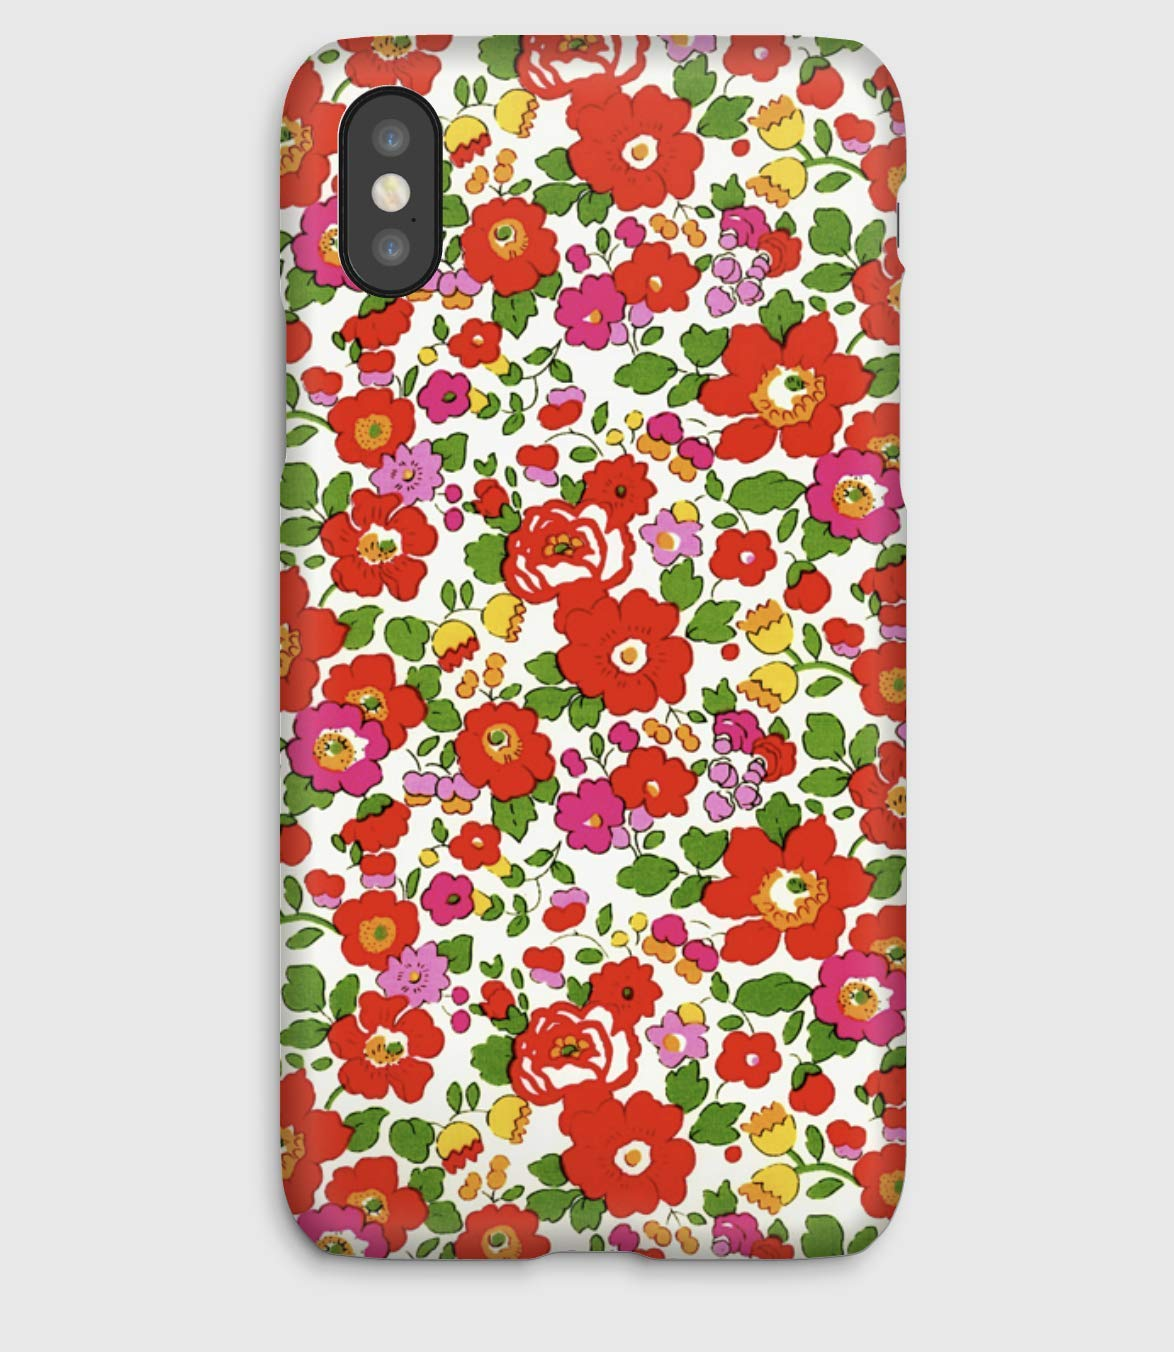 Liberty Betsy S, coque pour iPhone XS, XS Max, XR, X, 8, 8+, 7, 7+, 6S, 6, 6S+, 6+, 5C, 5, 5S, 5SE, 4S, 4,